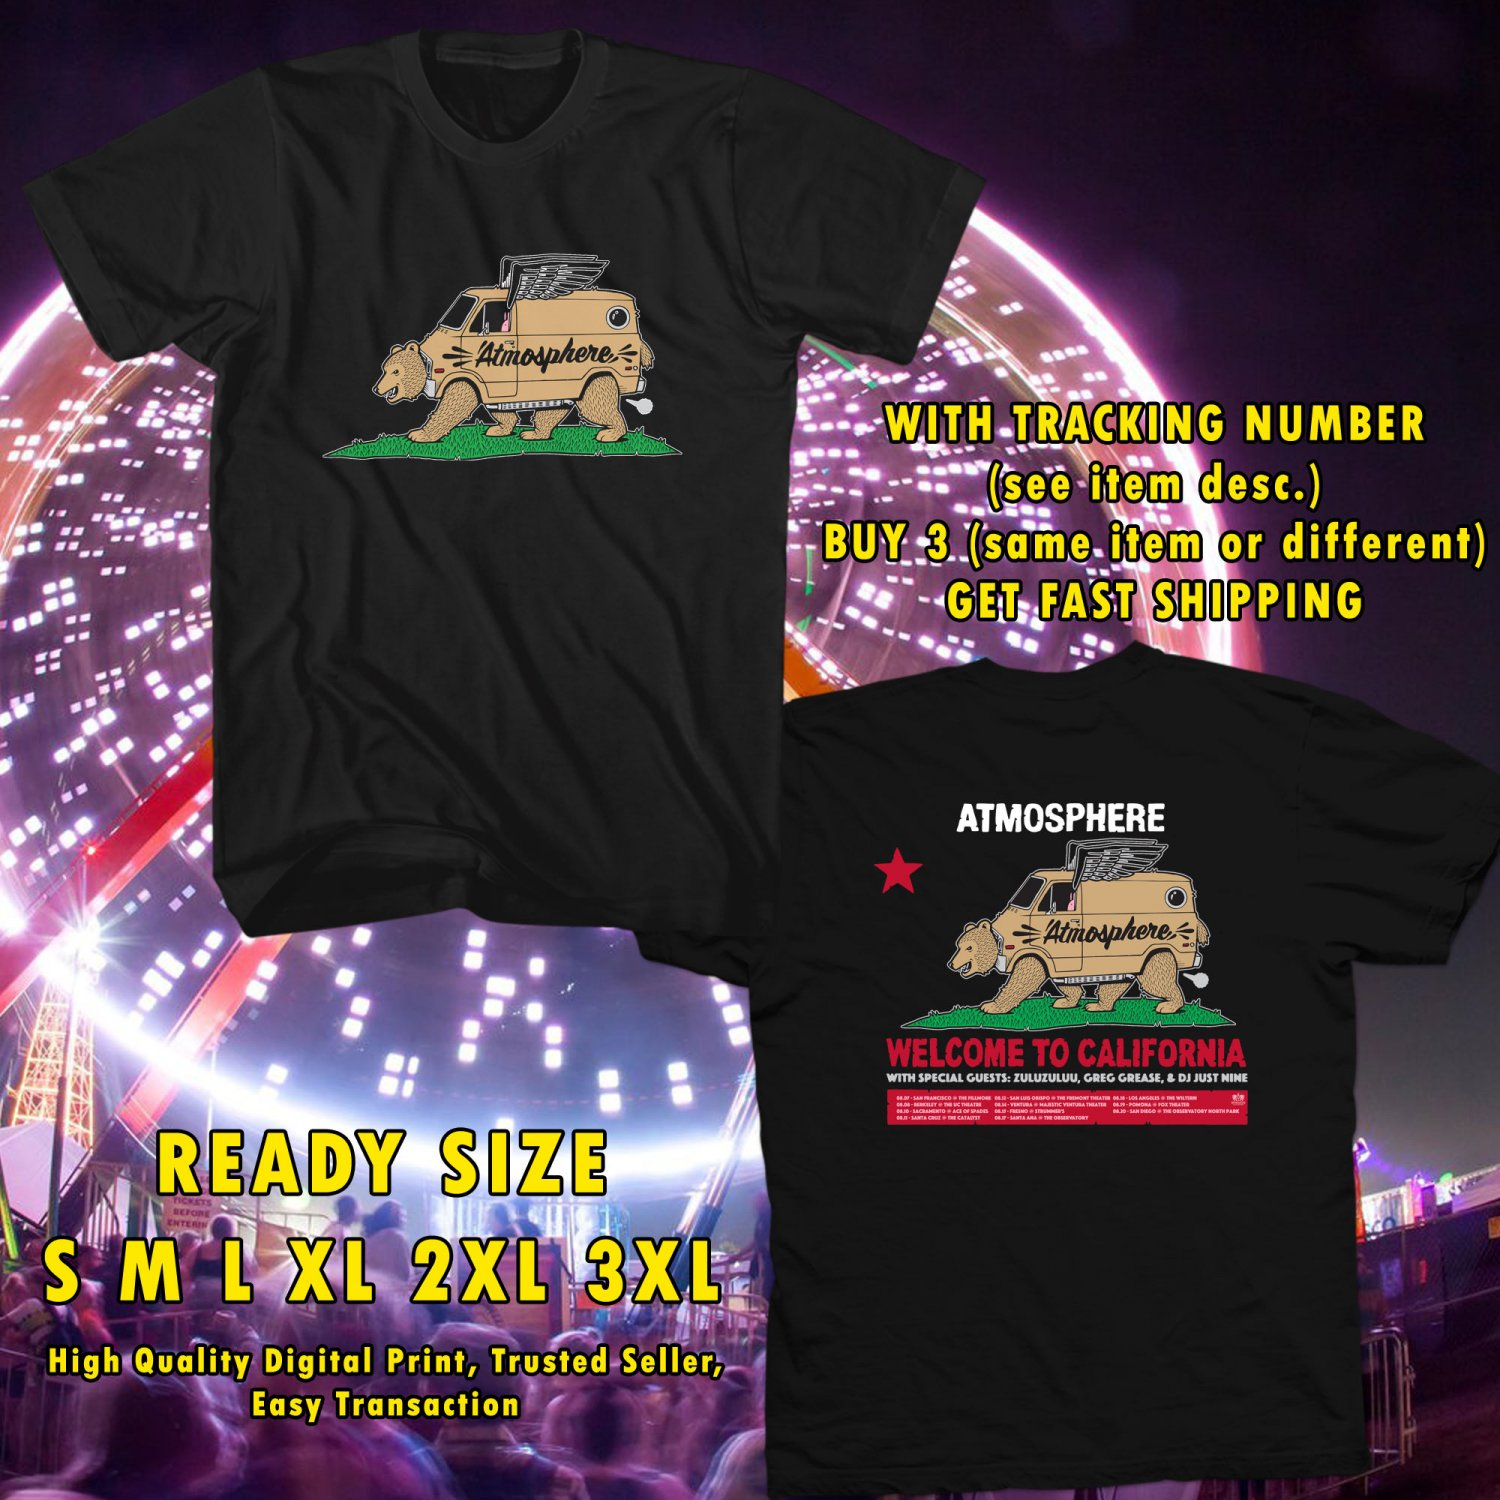 HITS ATMOSPHERE : WELCOME TO CALIFORNIA TOUR 2017 BLACK TEE'S 2SIDE MAN WOMEN ASTR